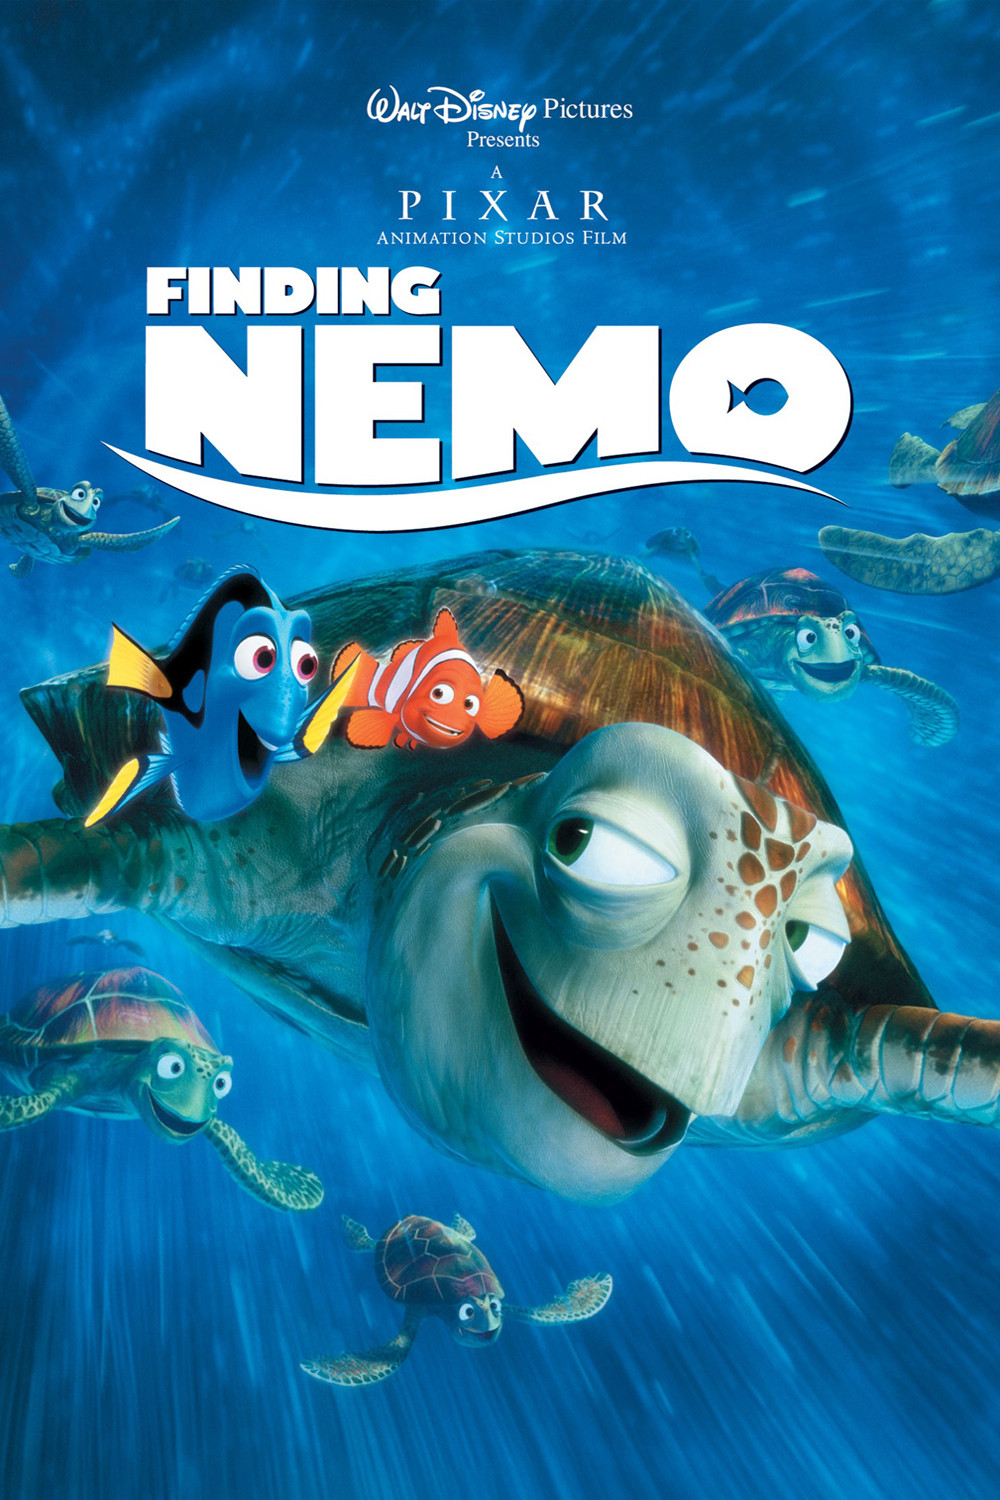 The geeky nerfherder movie poster art finding nemo 2003 for Finding nemo fish names